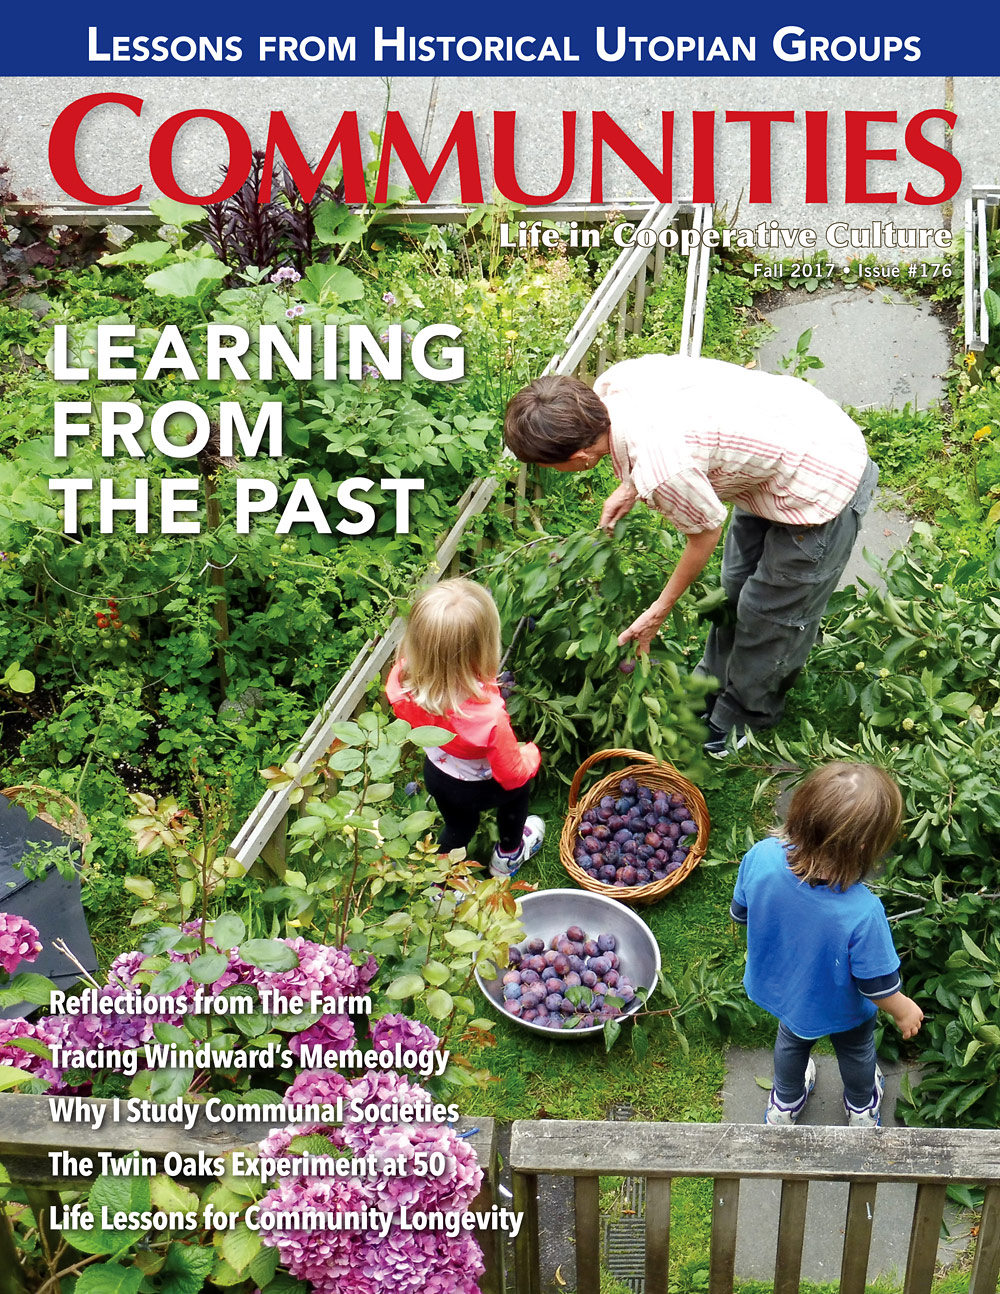 Communities magazine #176 Fall 2017